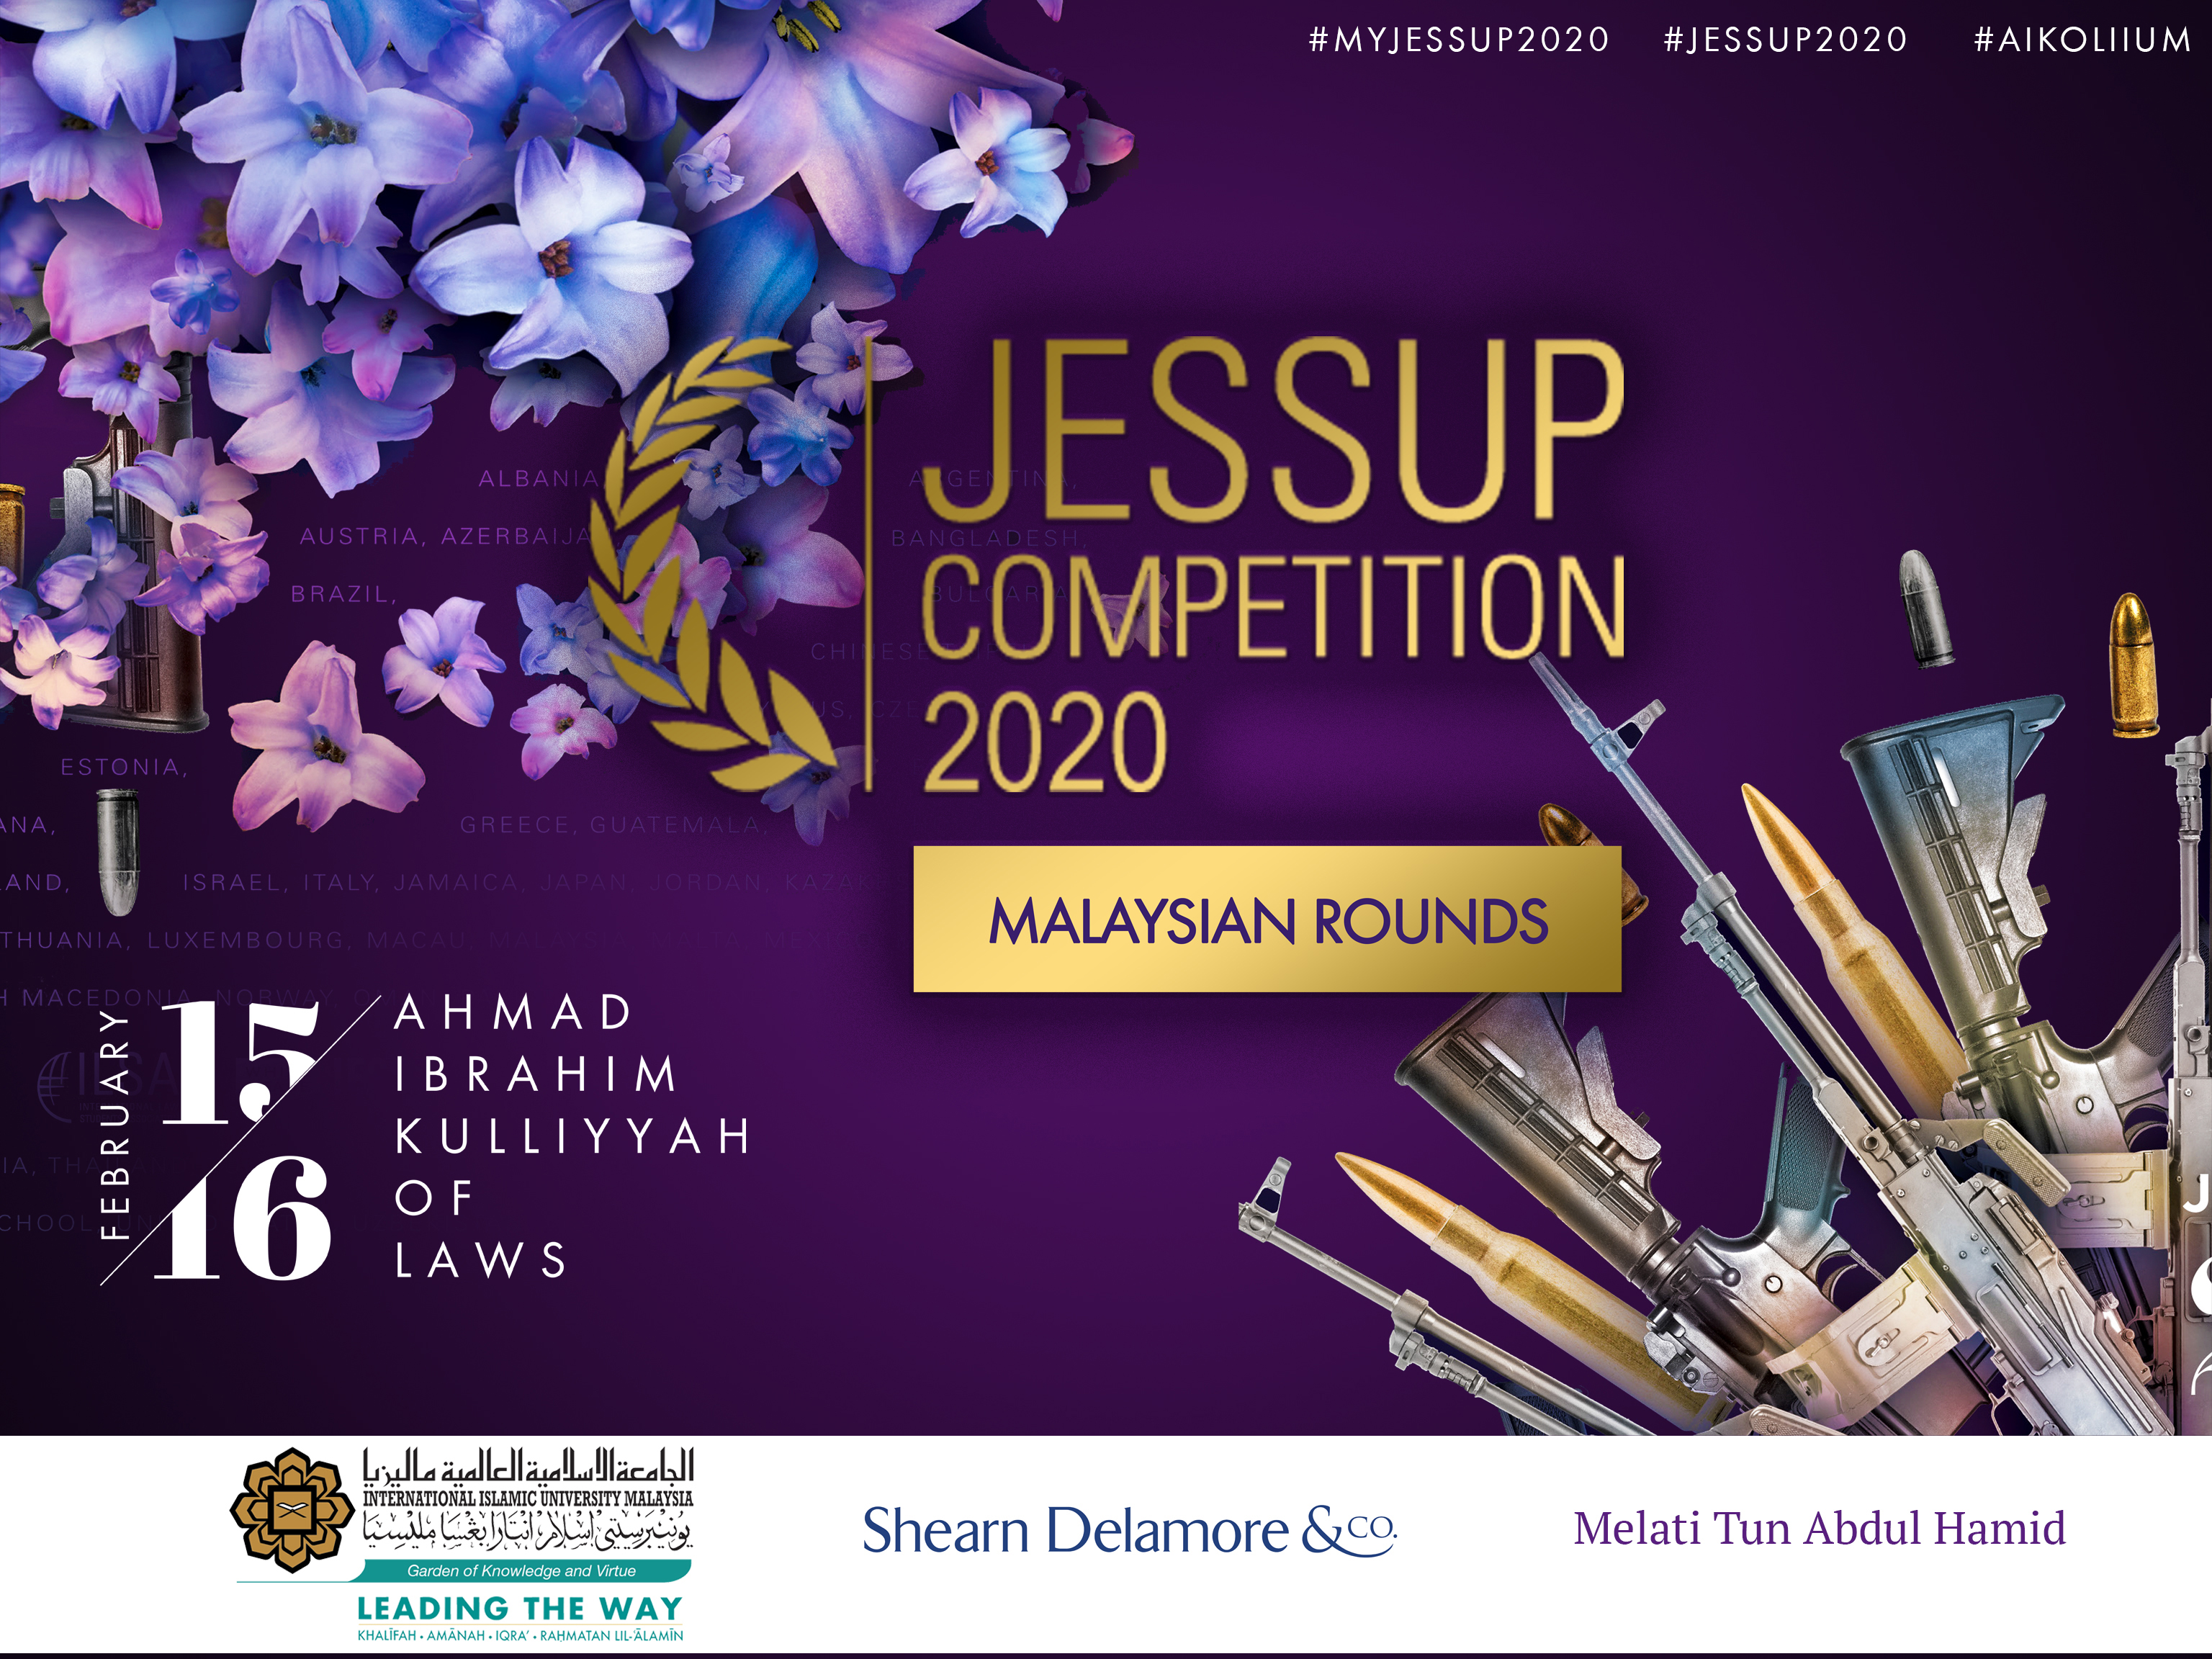 2020 JESSUP COMPETITION 2020